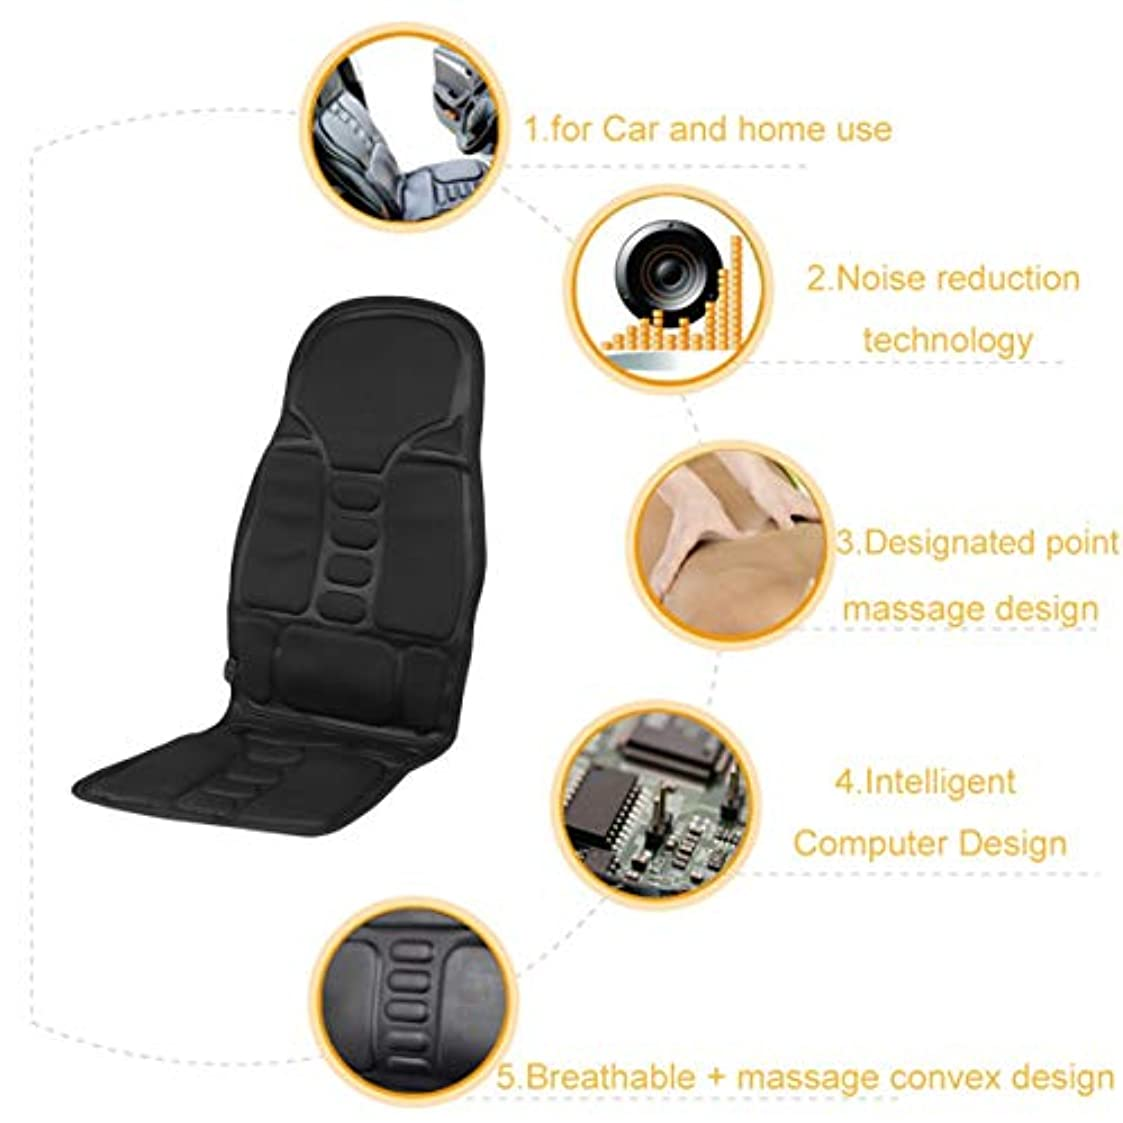 Professional Car Household Office Full Body Massage Cushion Lumbar Heat Vibration Neck Back Massage Cushion Seat